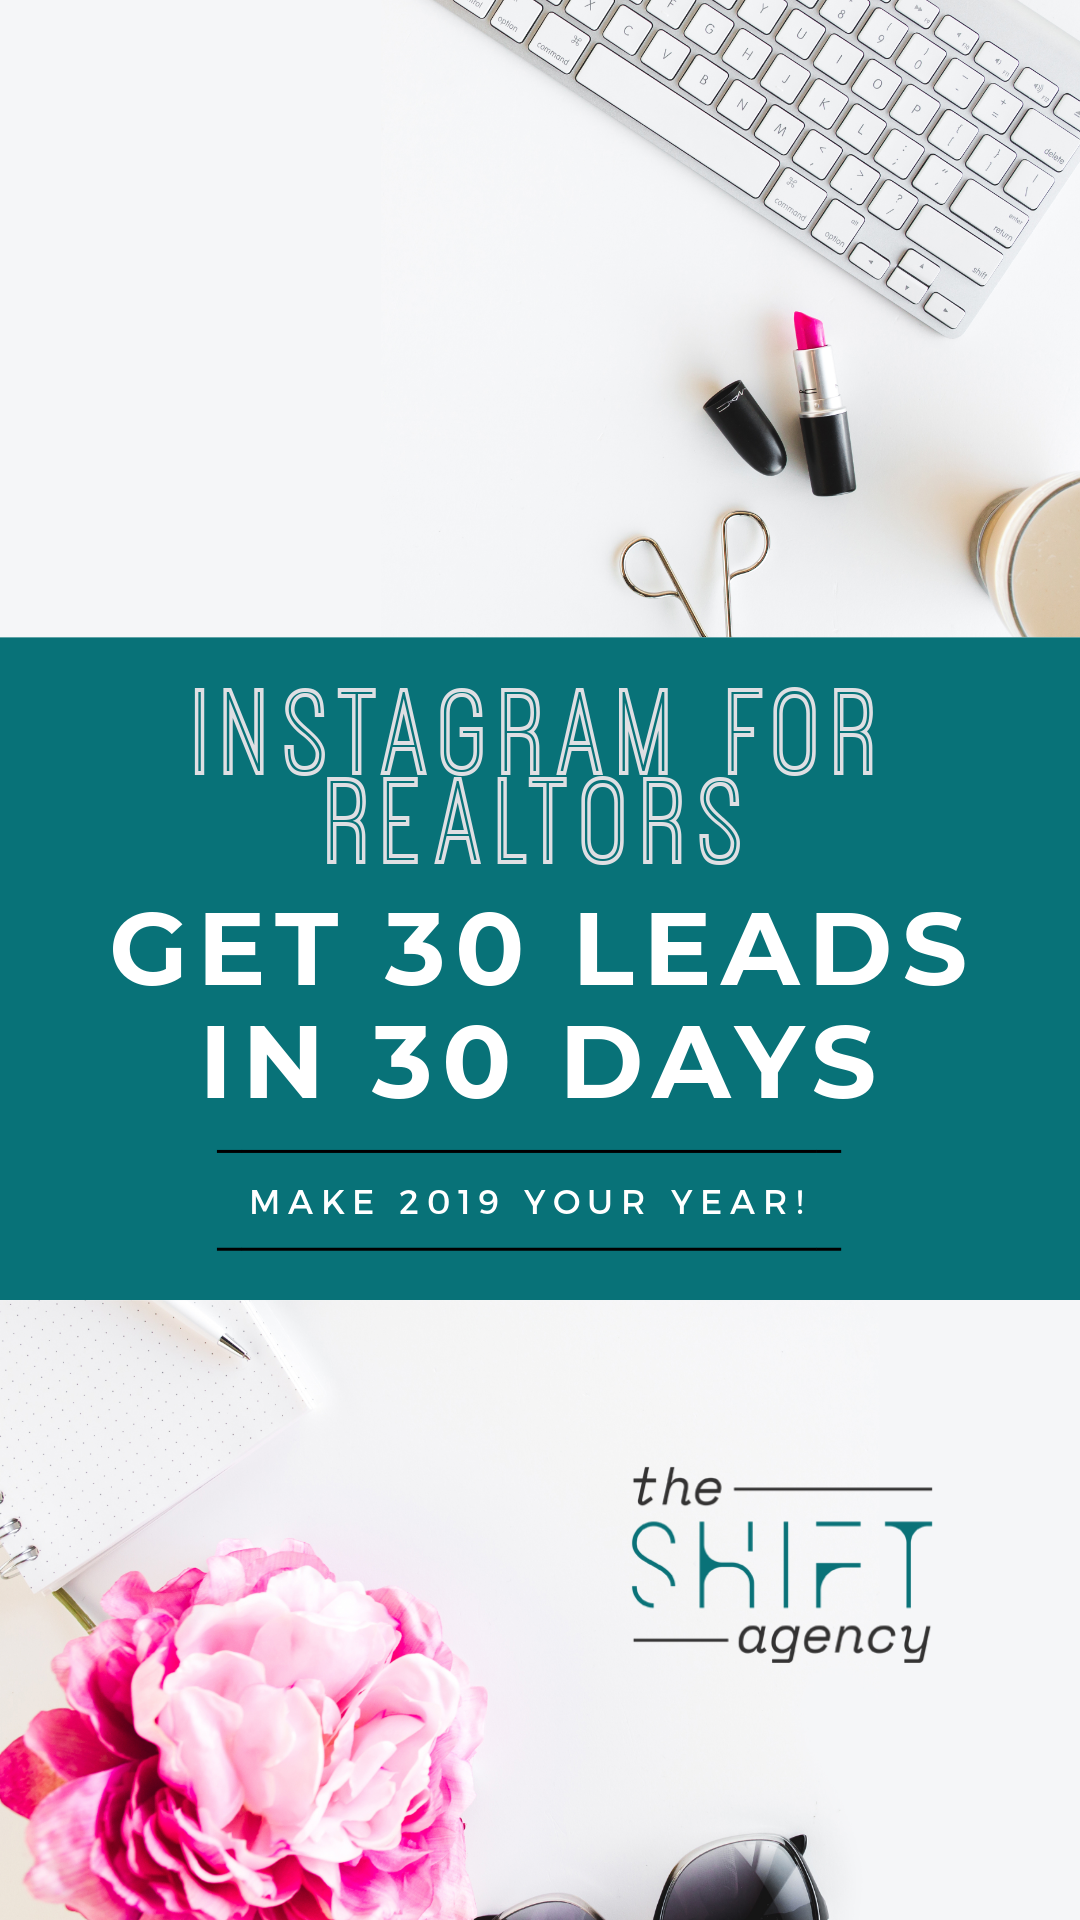 Instagram for Realtors: 5 Tips for Lead Generation in 2019